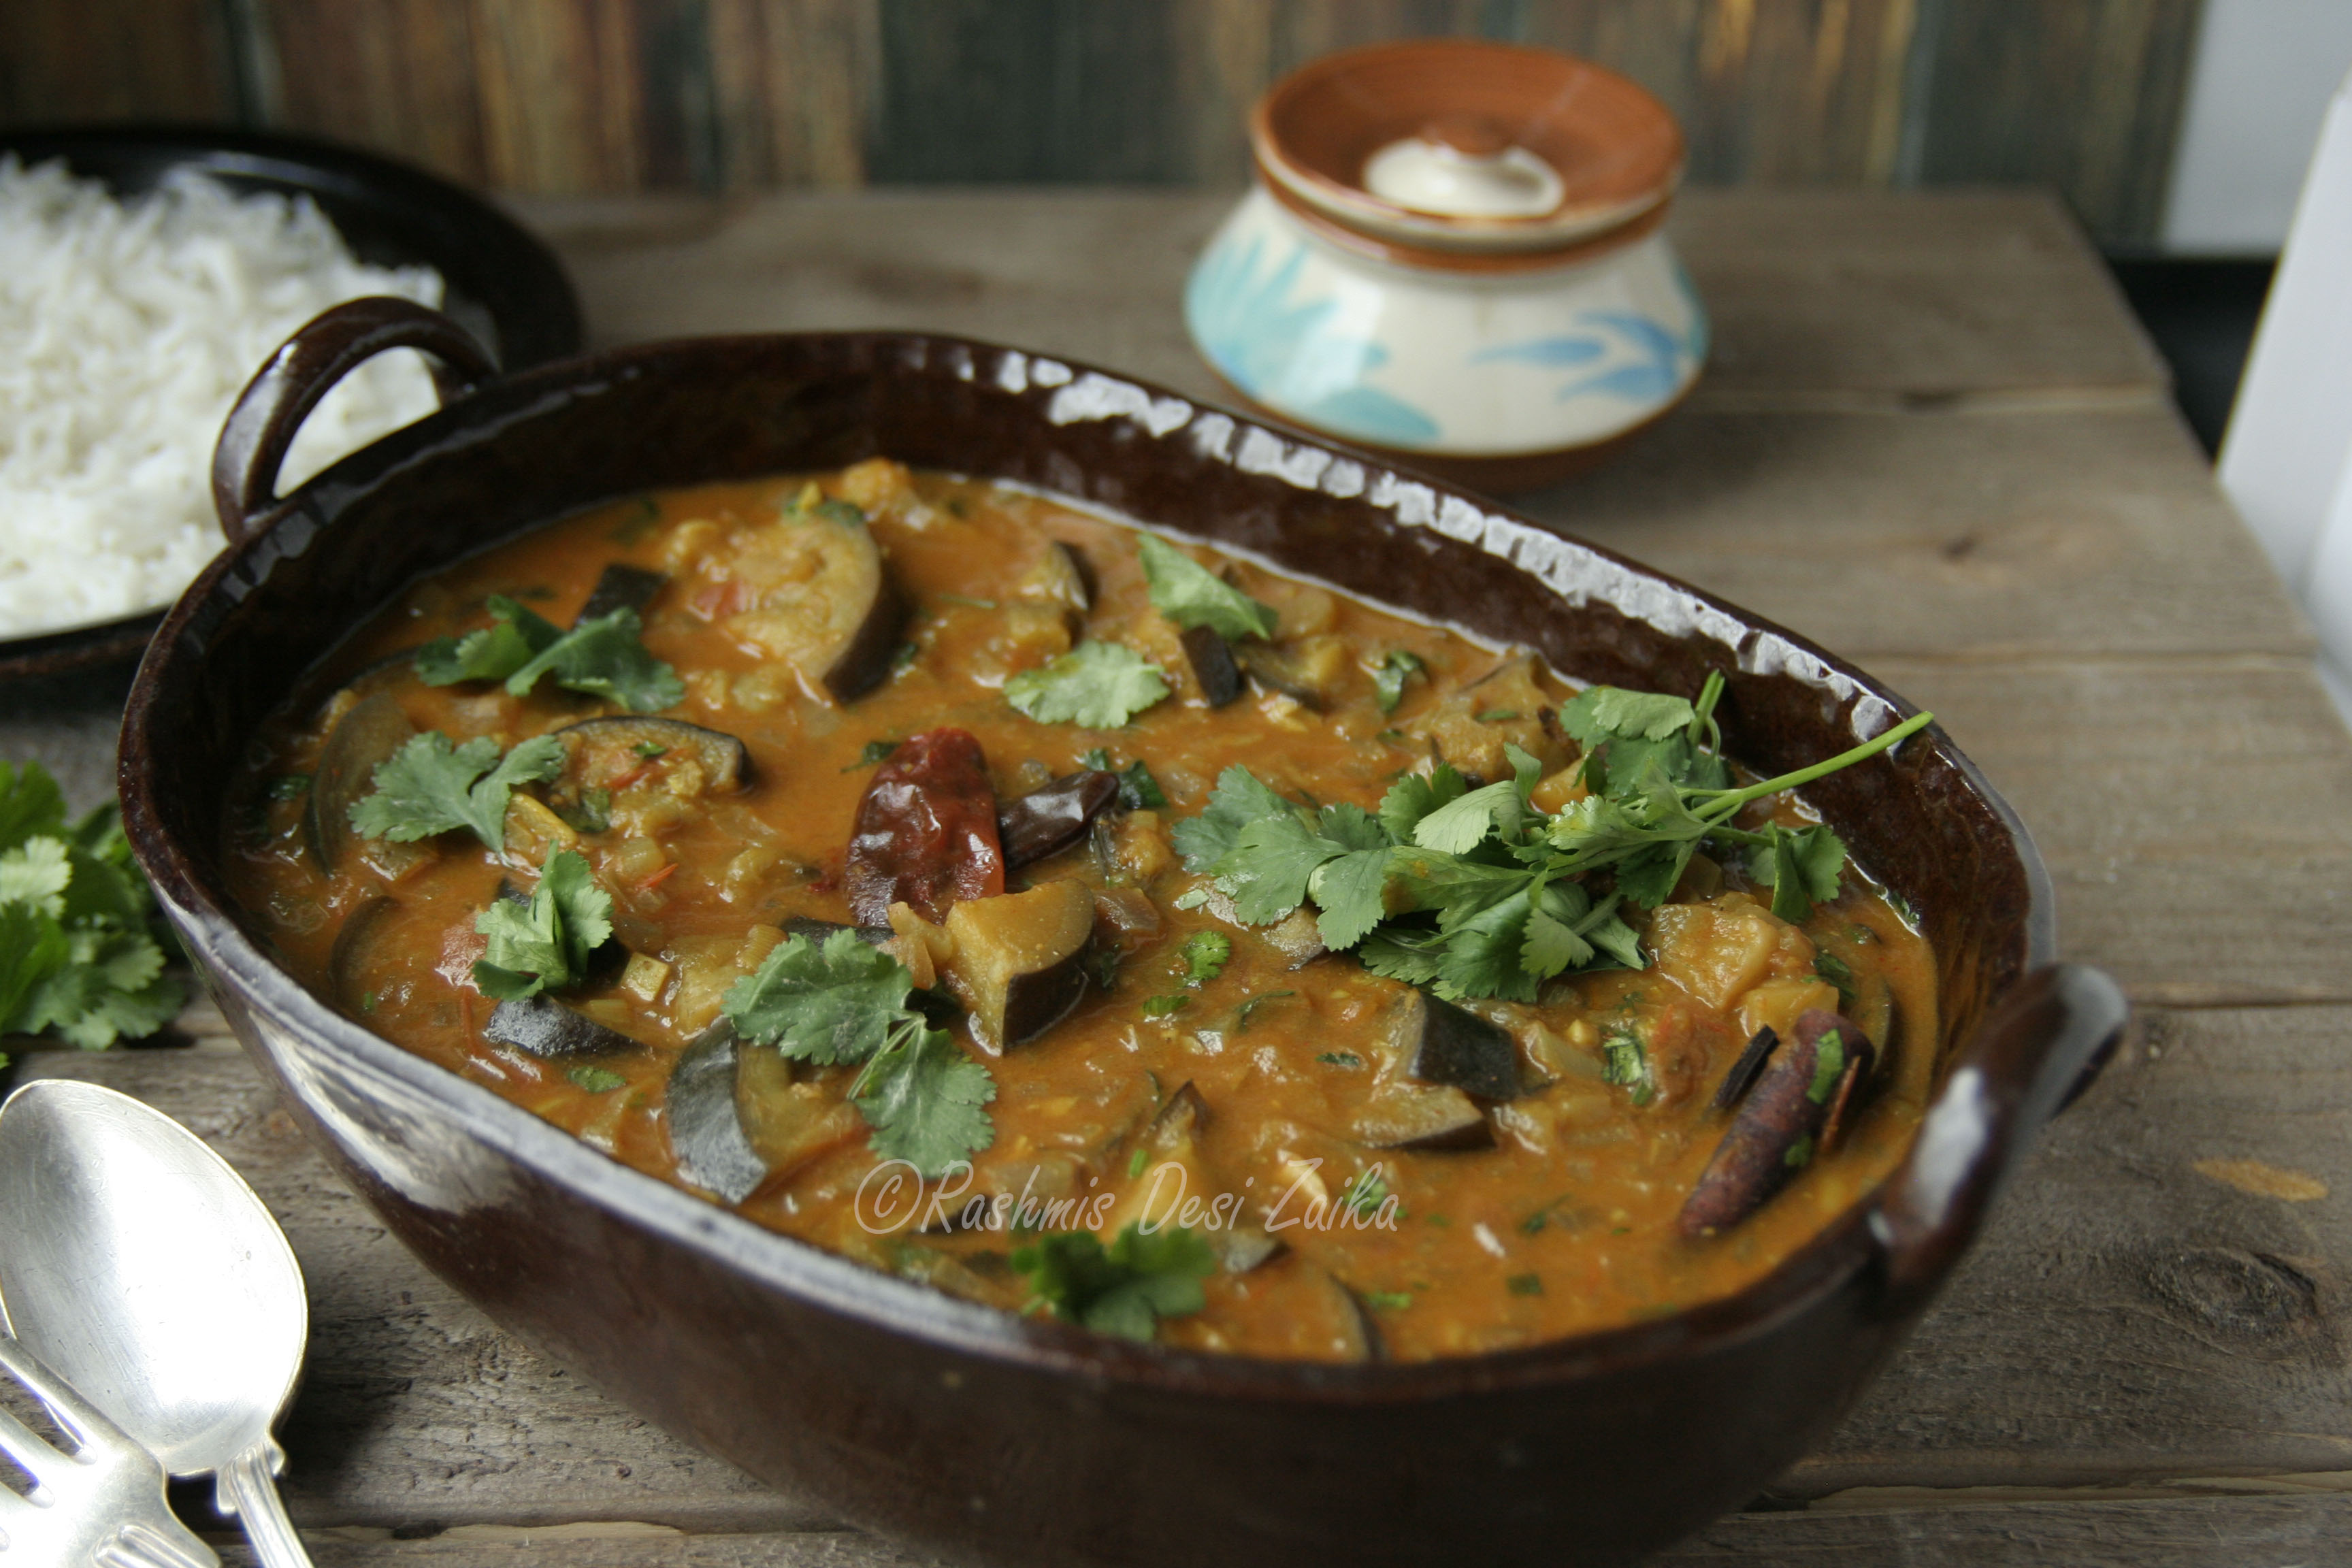 Roasted Eggplant with Whole Spices and Coconut Milk